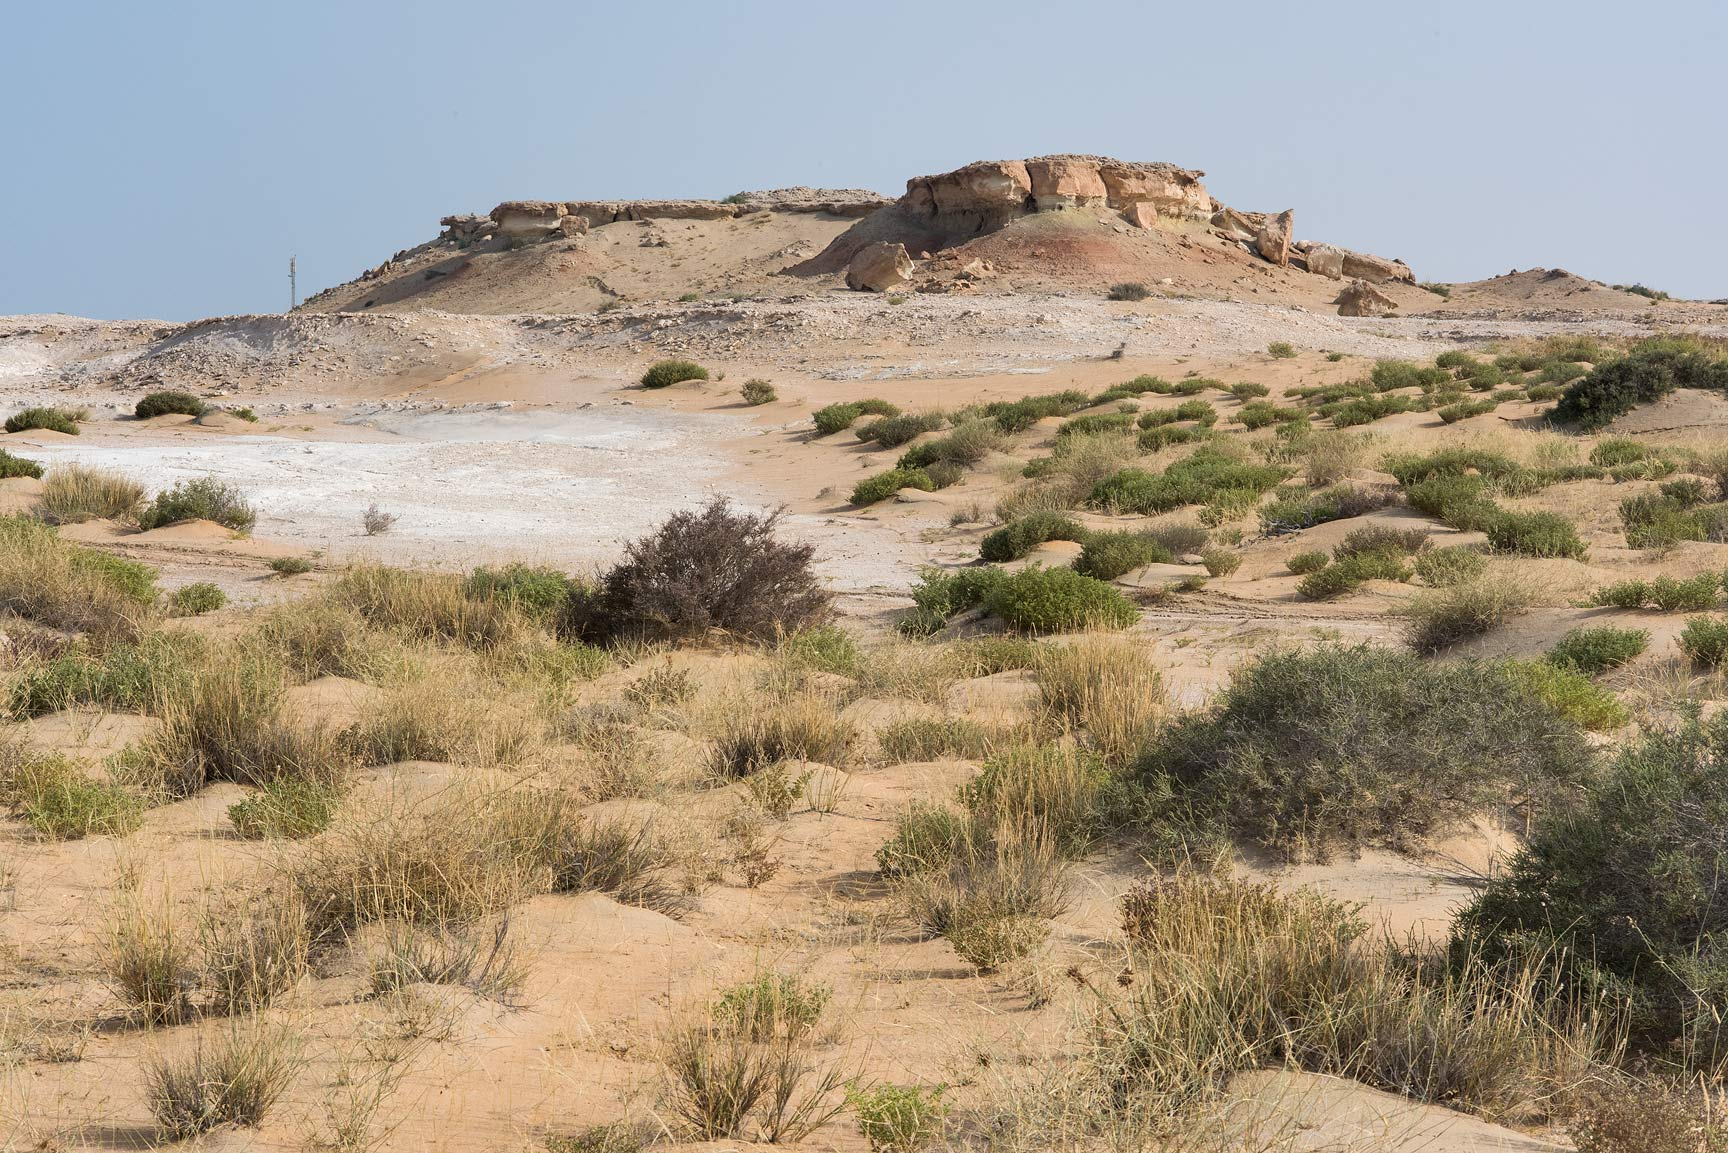 Vegetation at the foot of limestone cliffs in...Reserve near Abu Samra. Southern Qatar